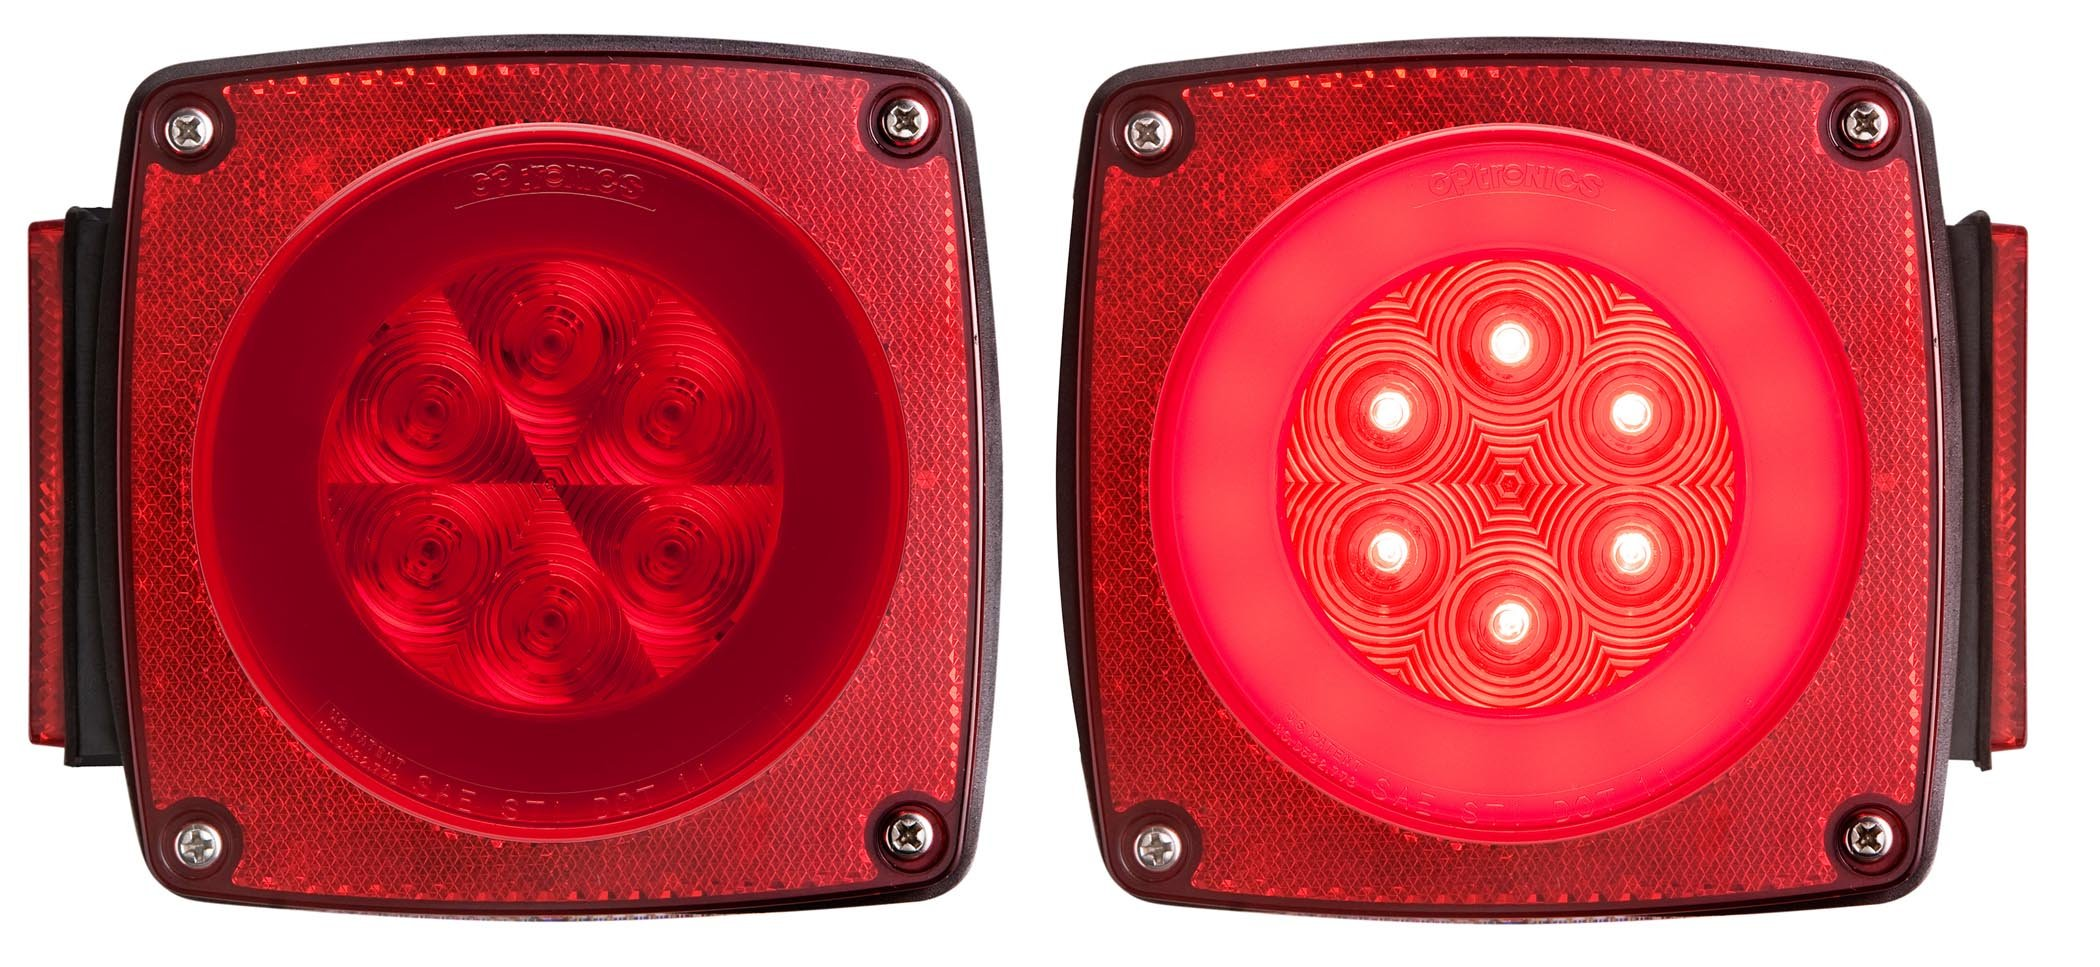 Optronics TLL190RK Red LED Combination Tail Light Kit by Optronics